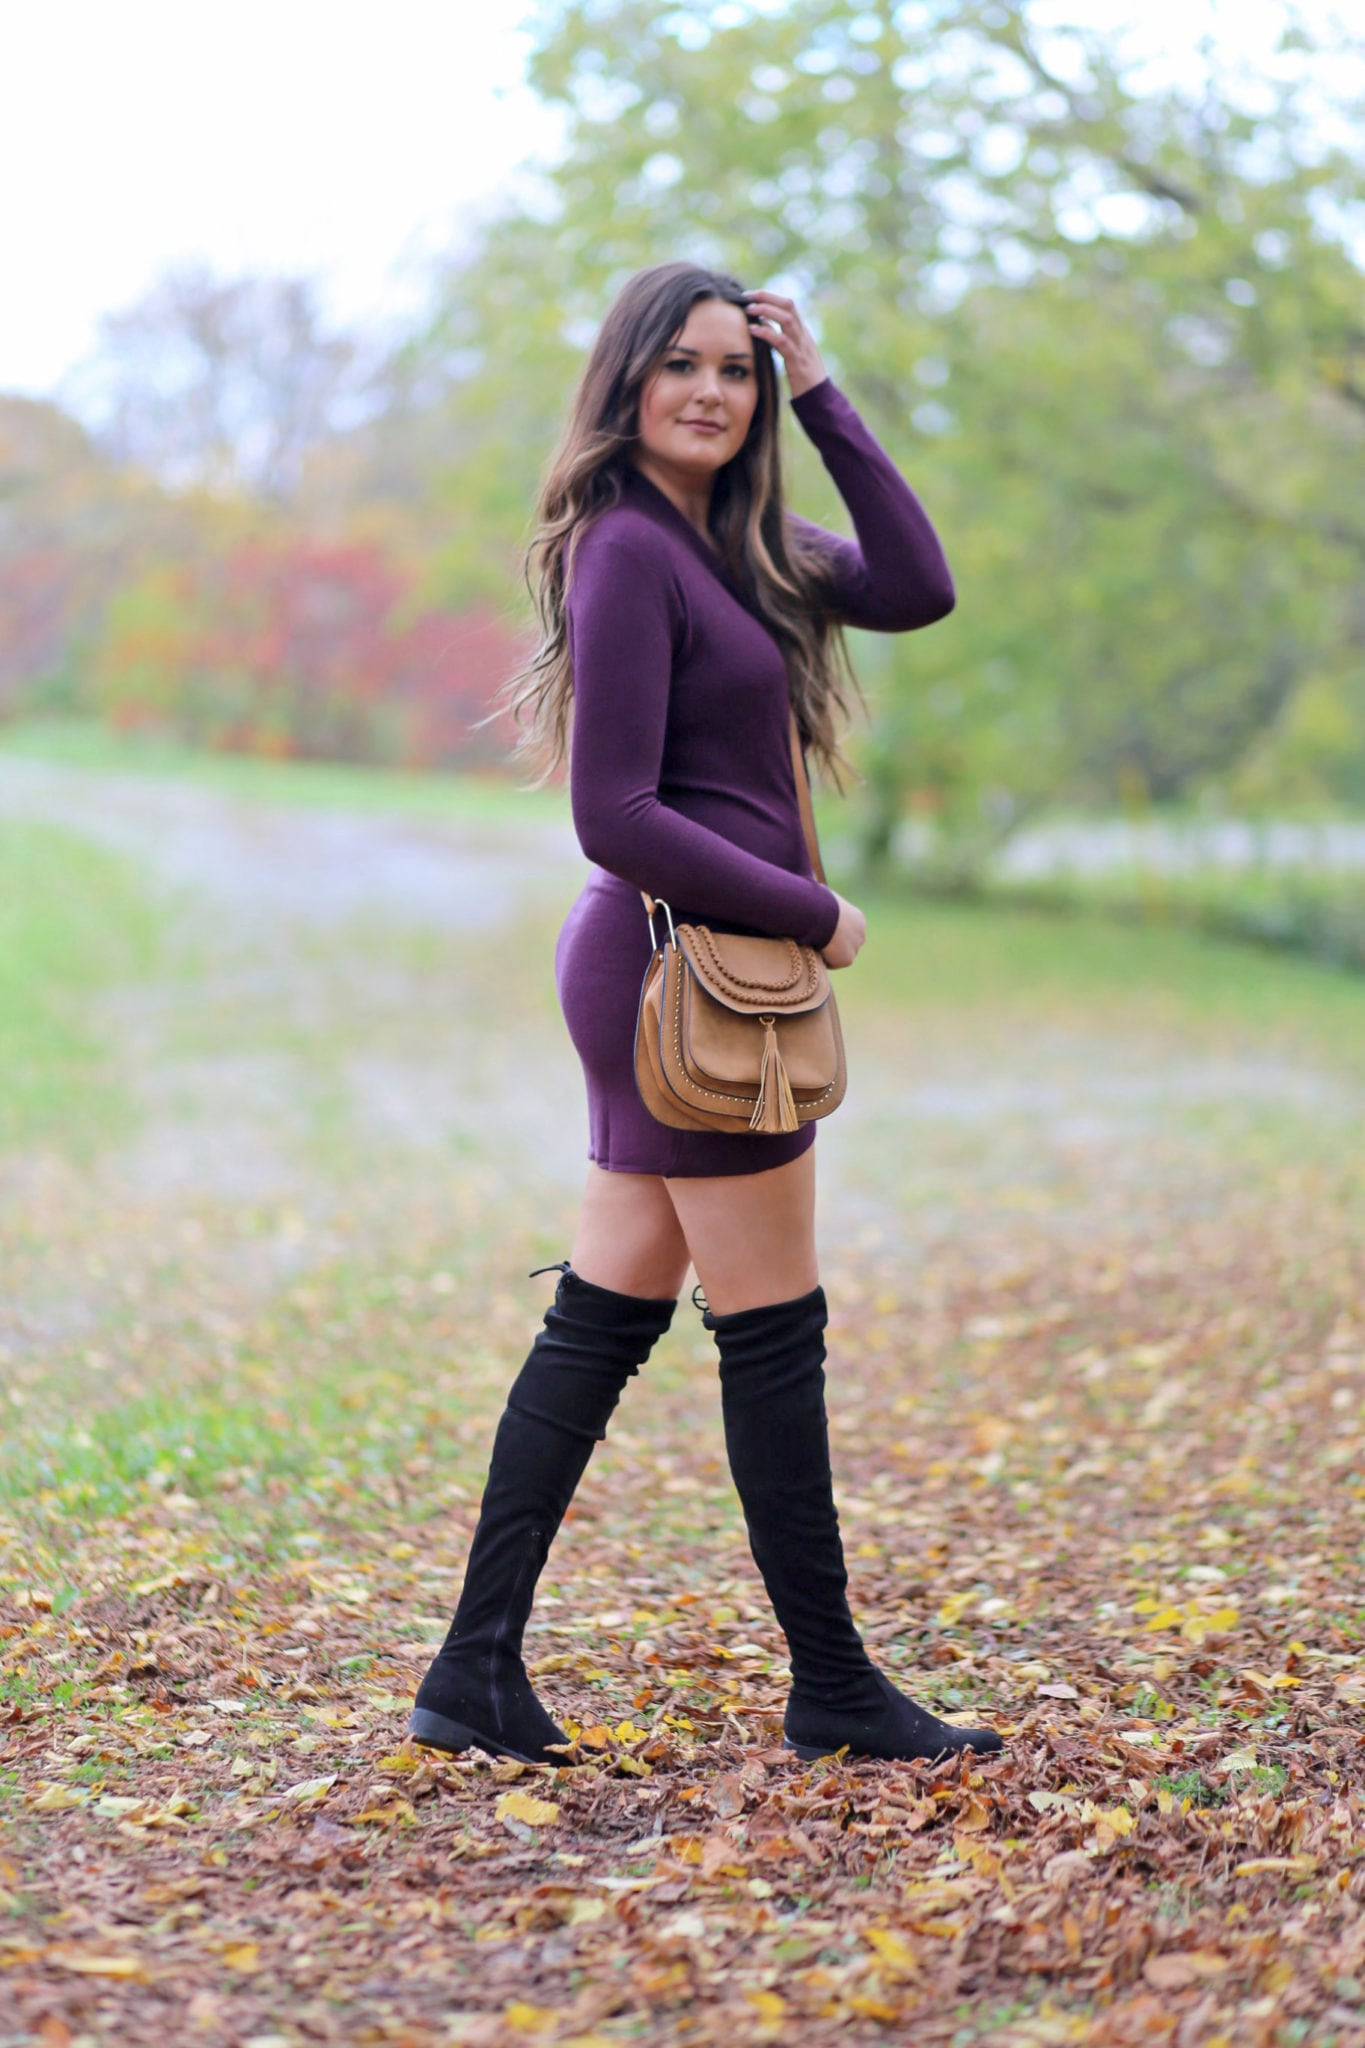 Flattering bodycon dress | long hair balayage | cute over the knee boots